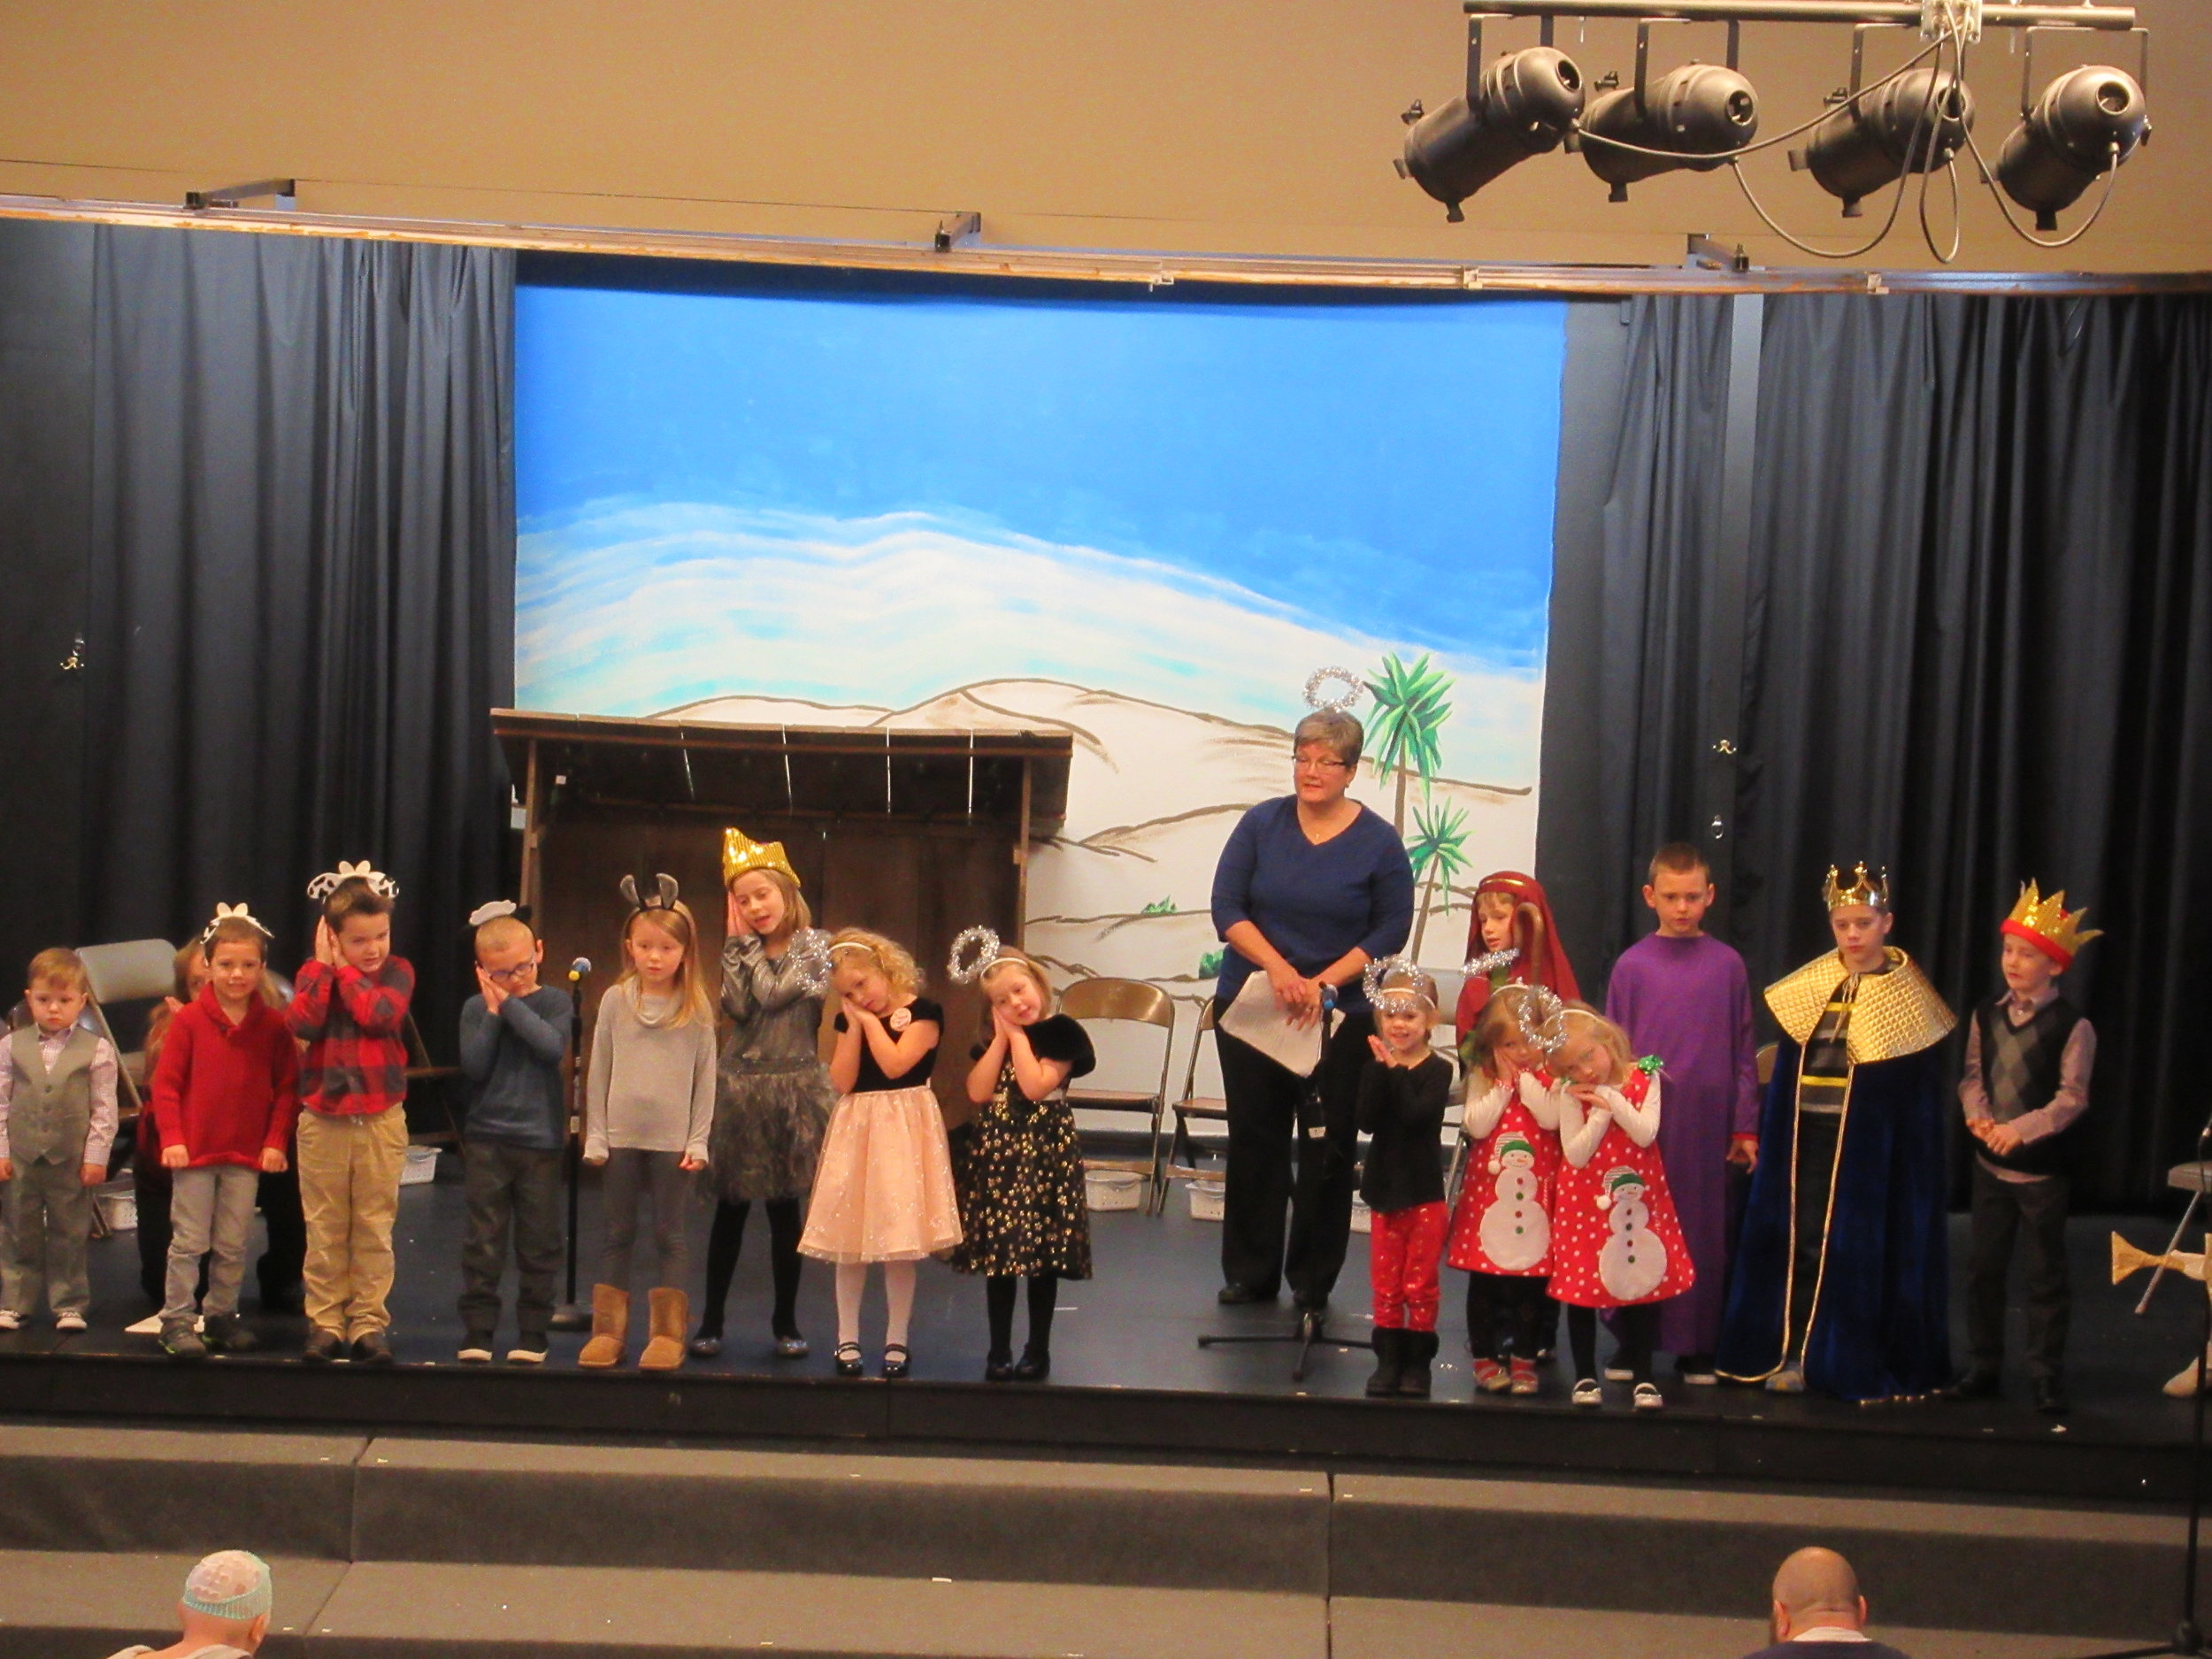 Children_s Christmas Program 5.JPG